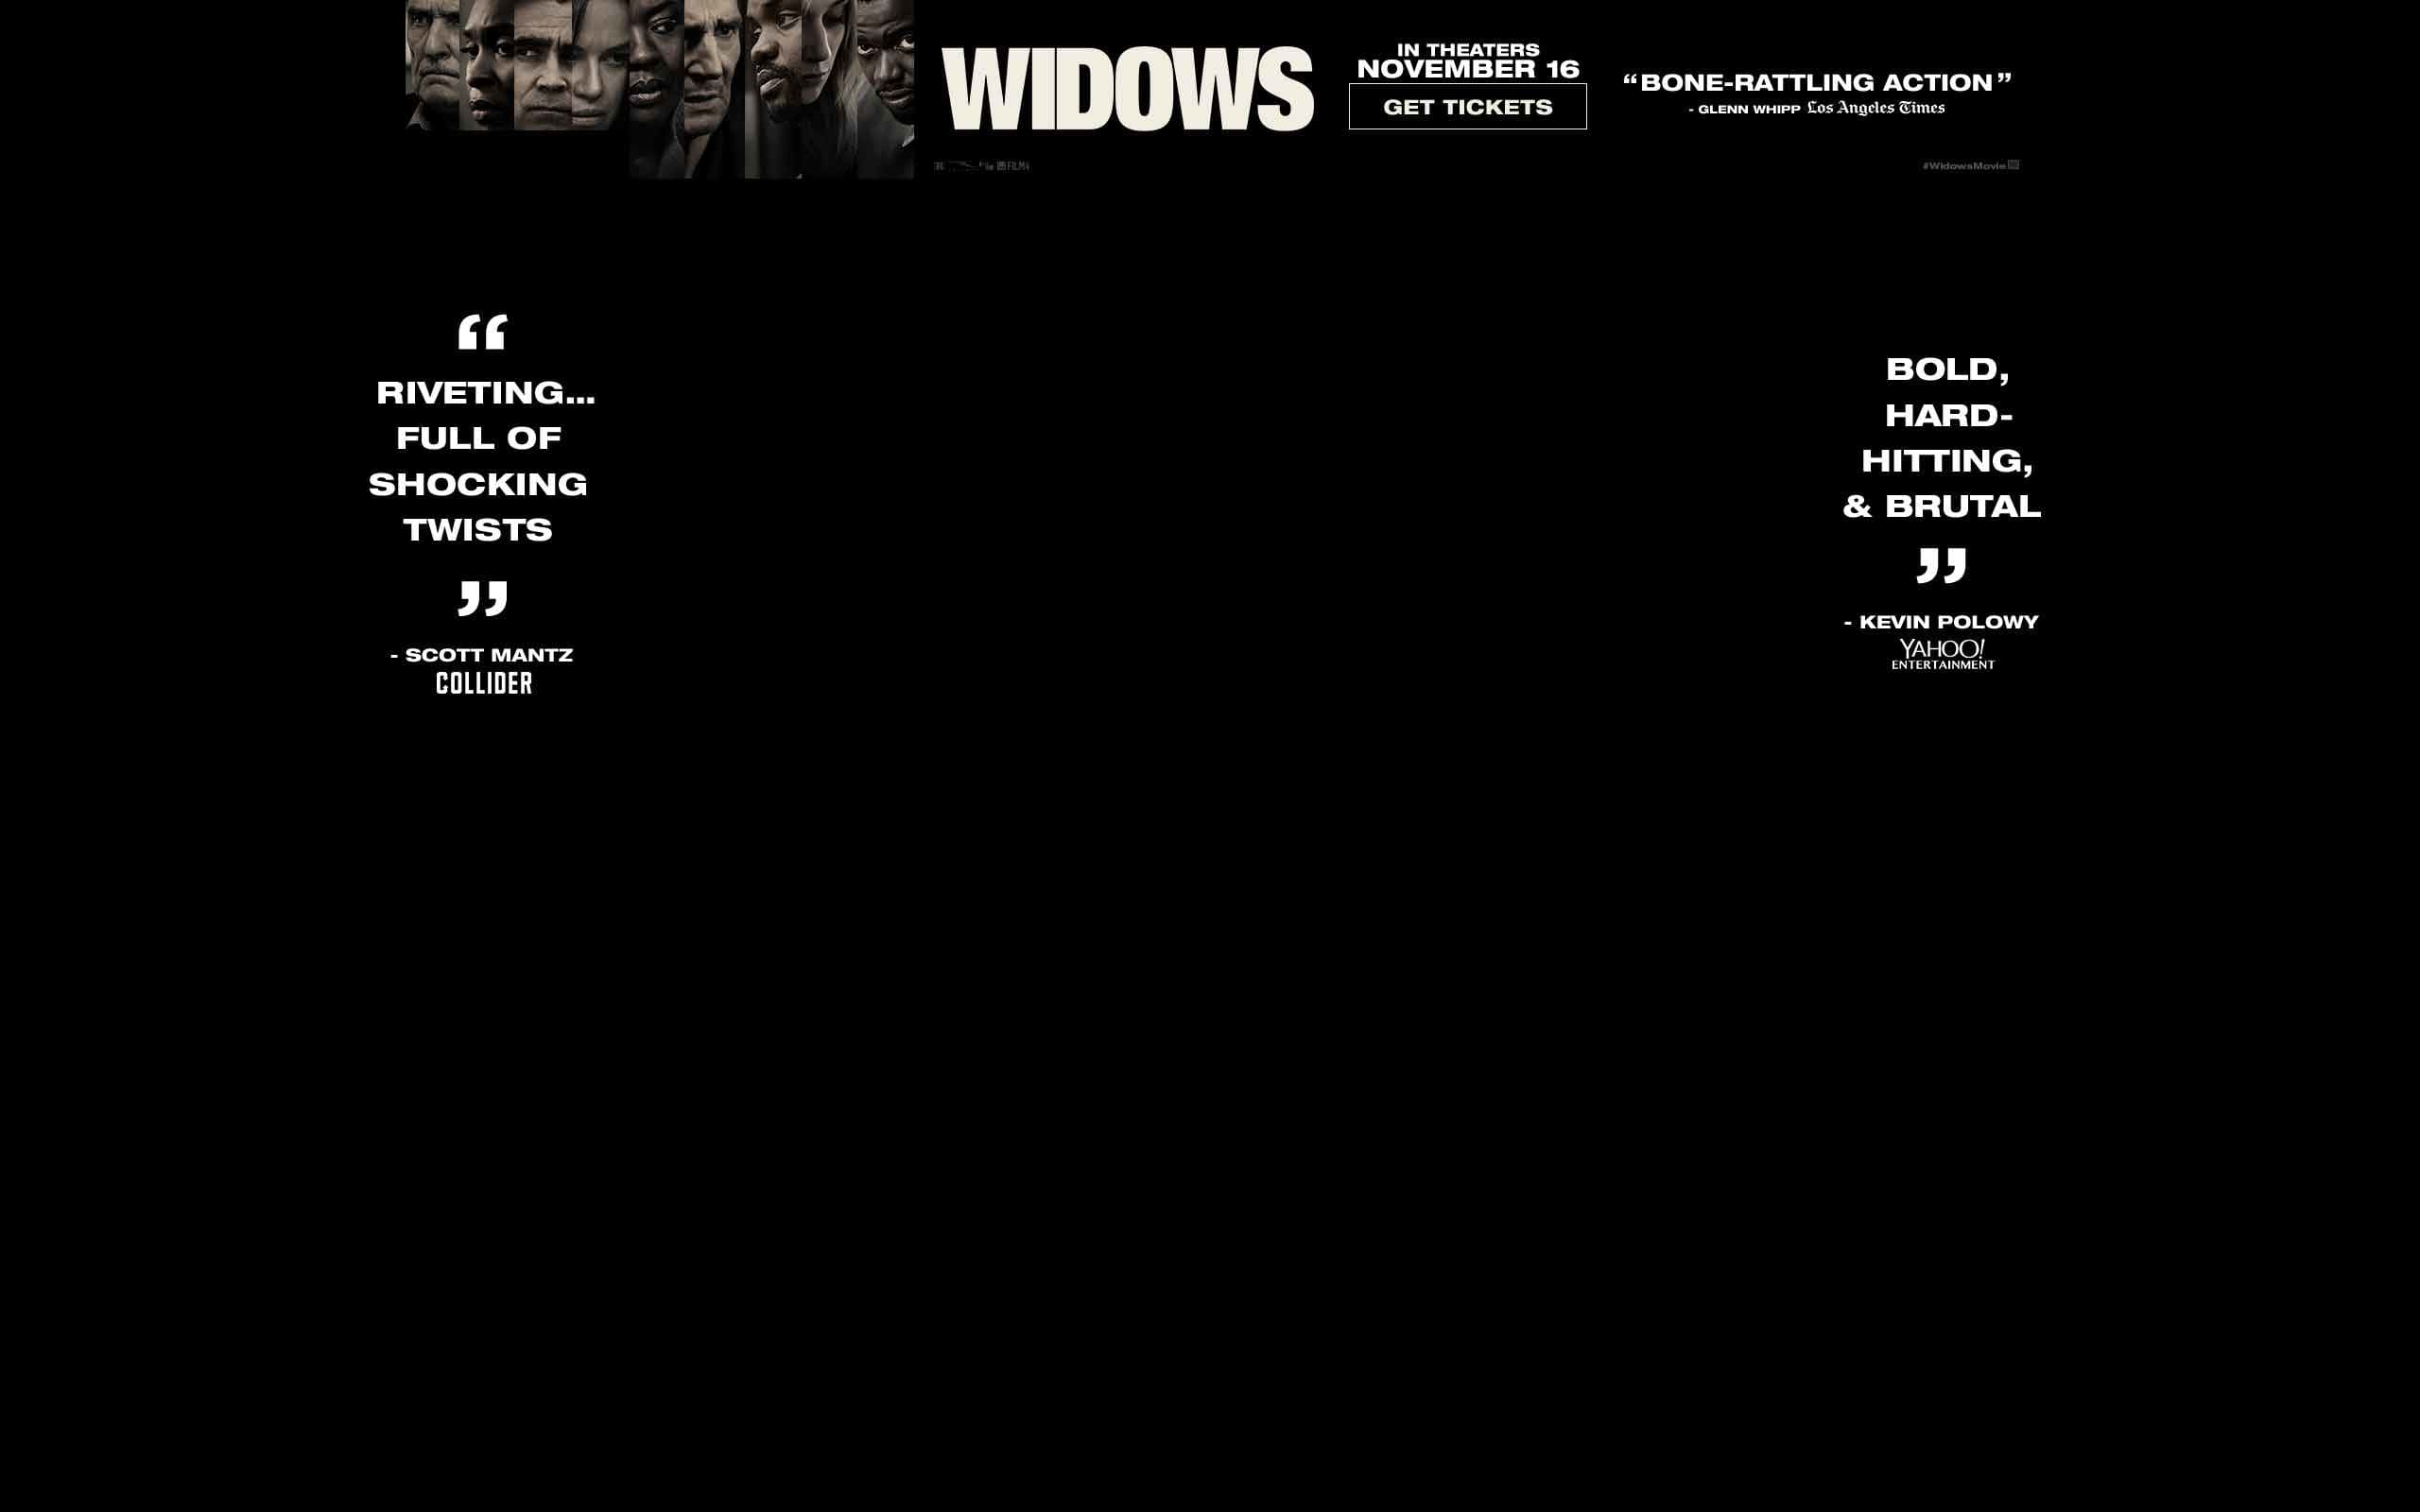 Widows - Movie Tickets and Showtimes - Opens this weekend at Regal.